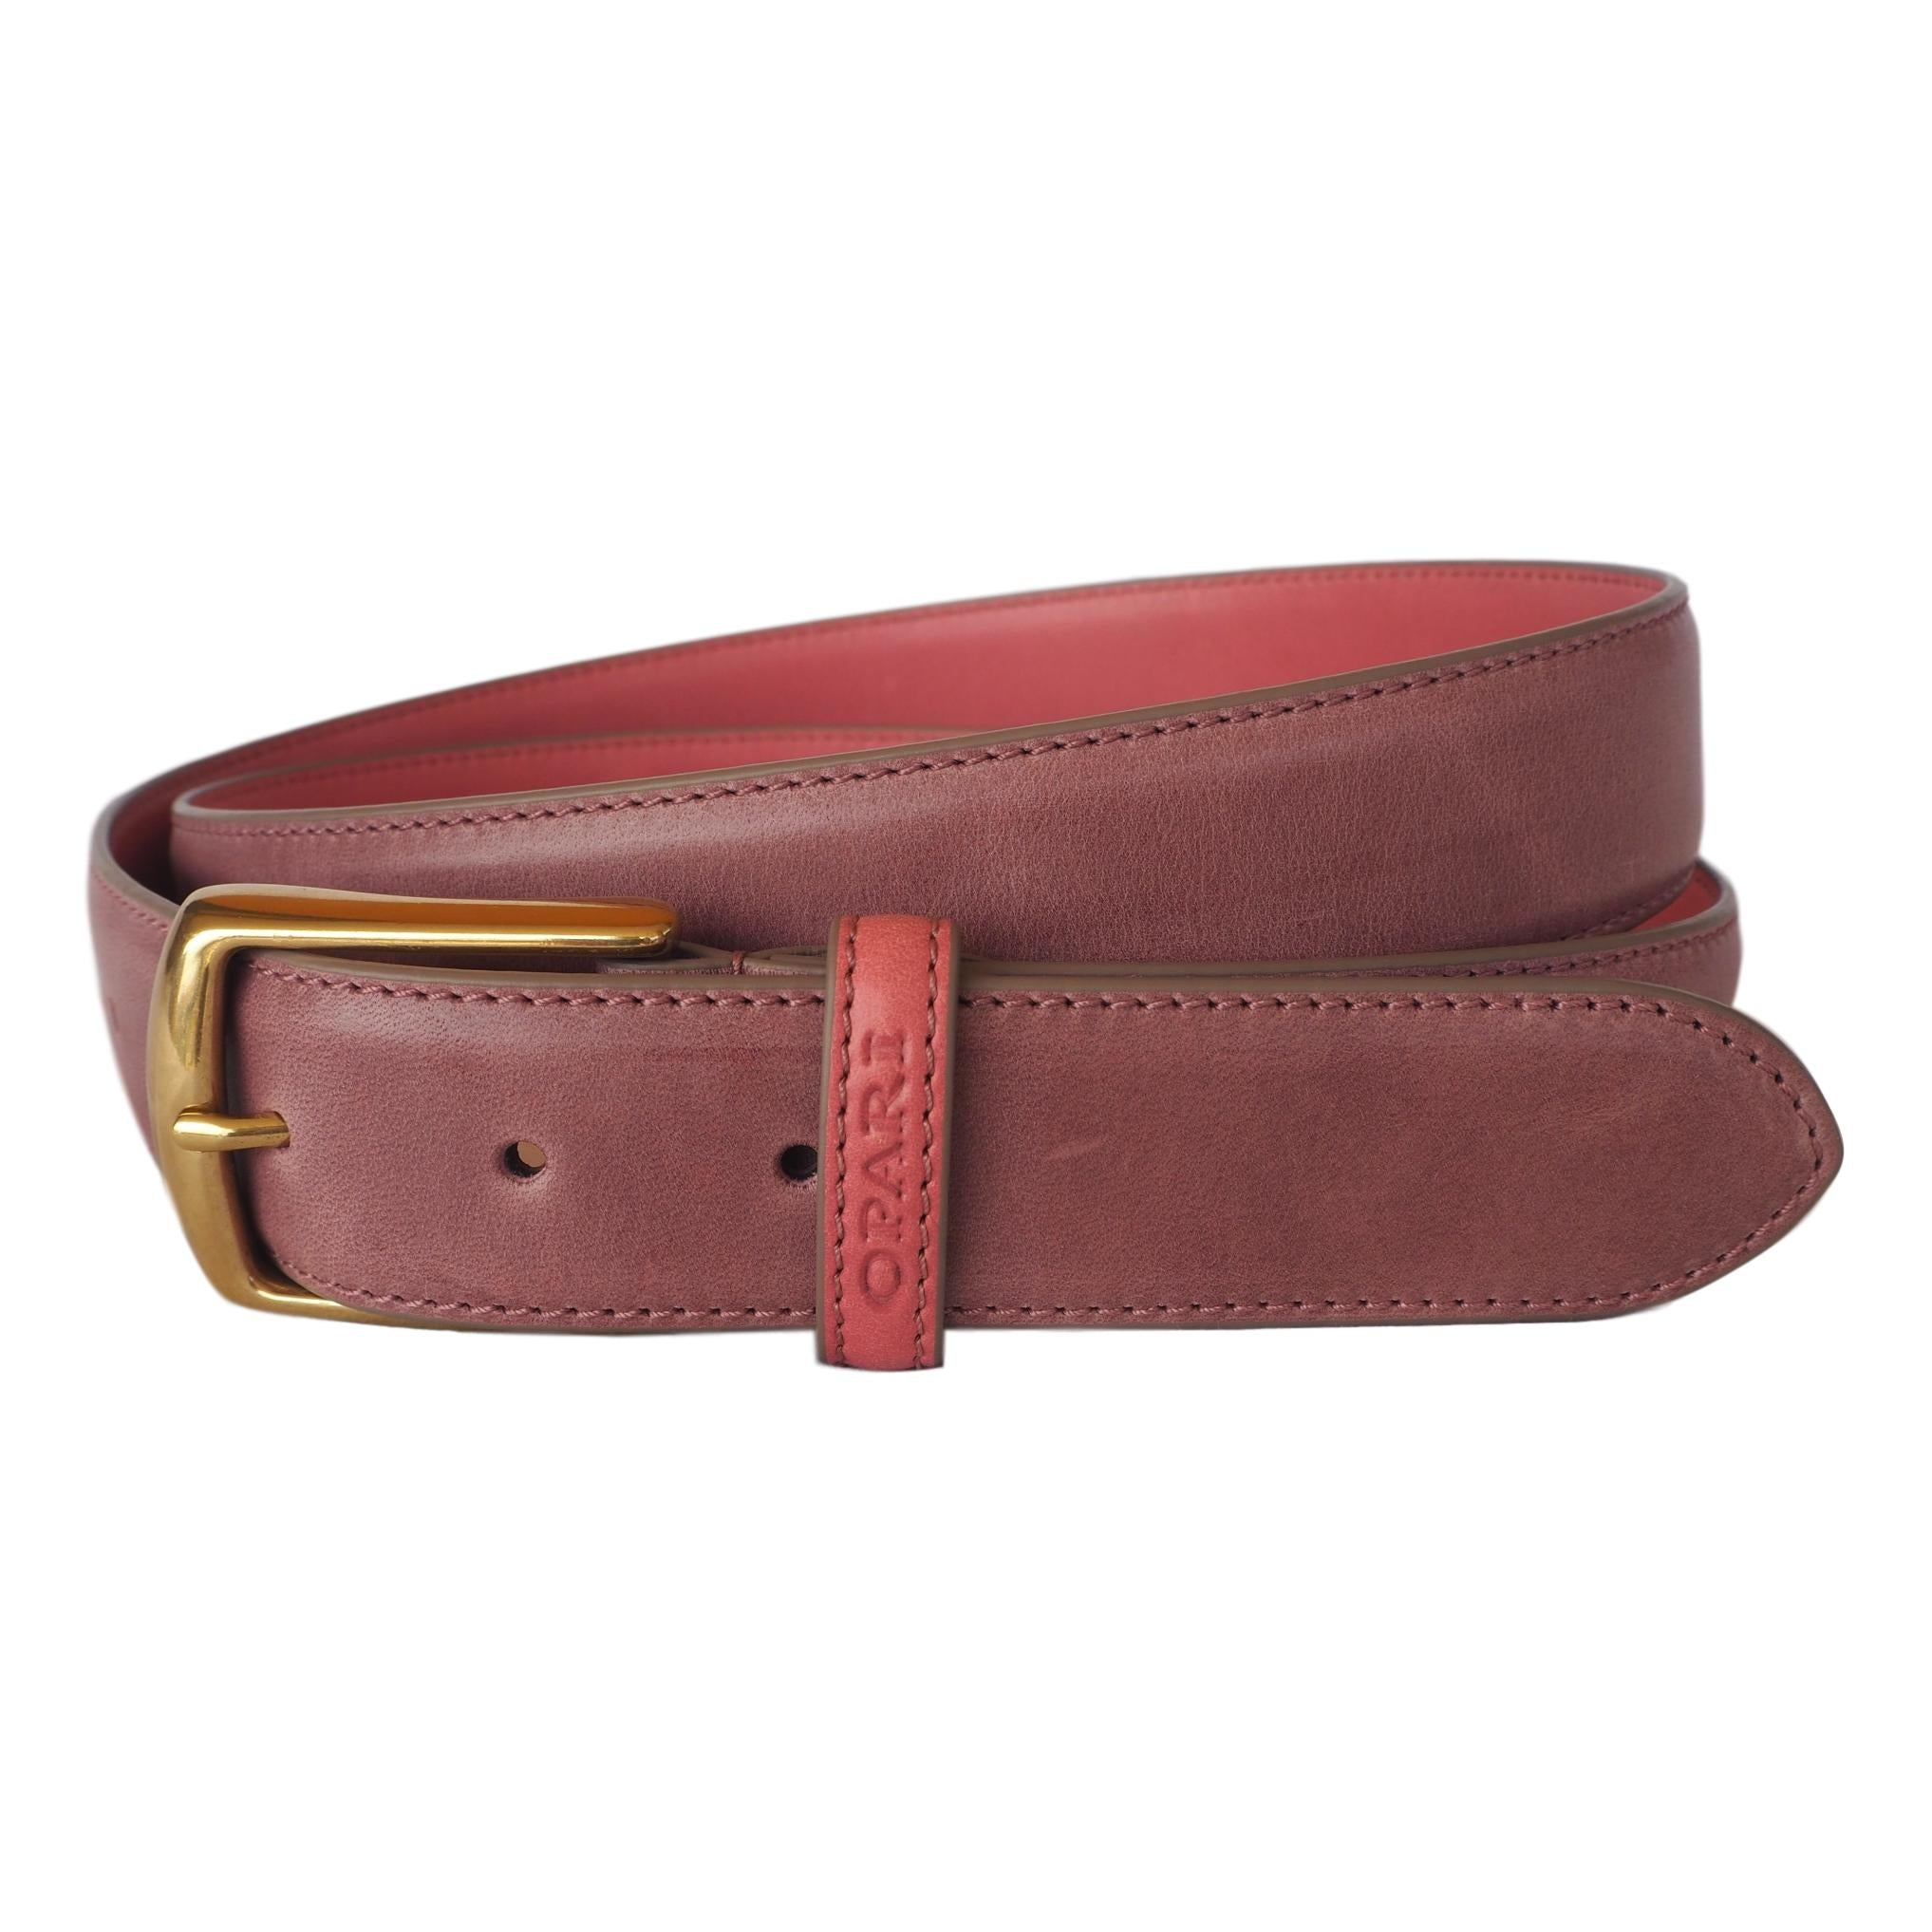 Raspberry Pink Leather Belt by Opari